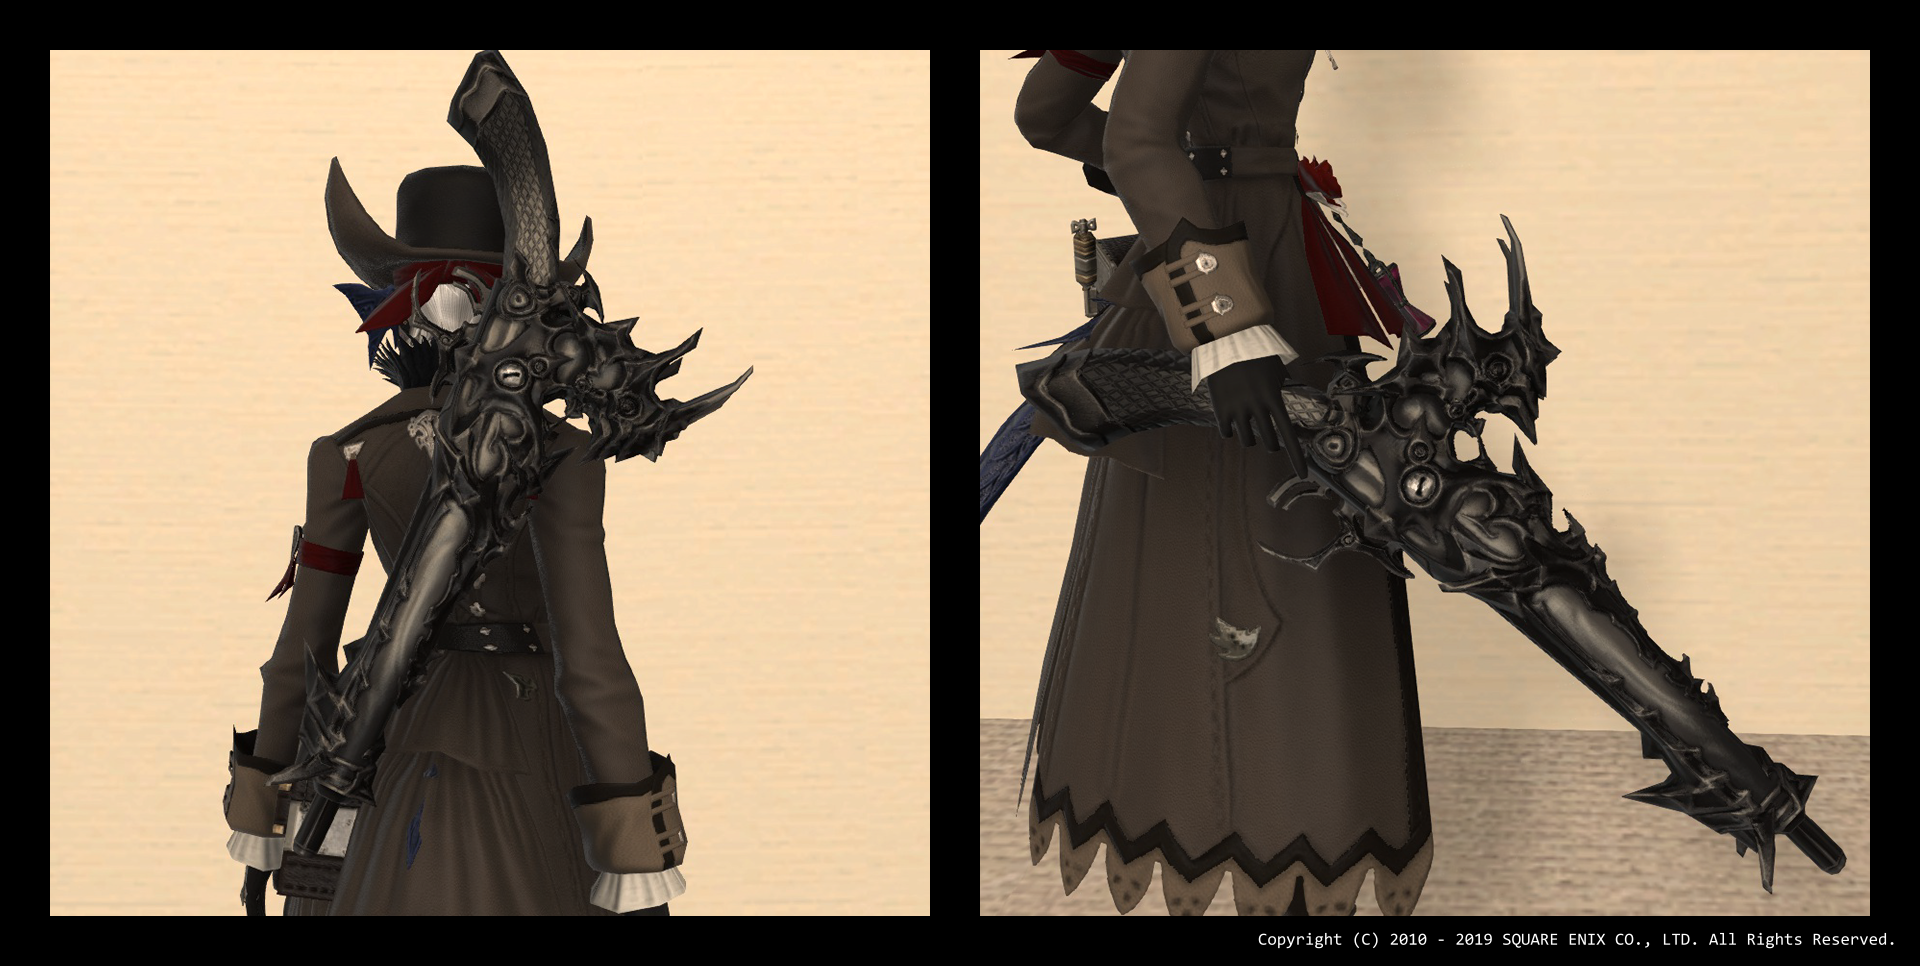 390-mch-arms